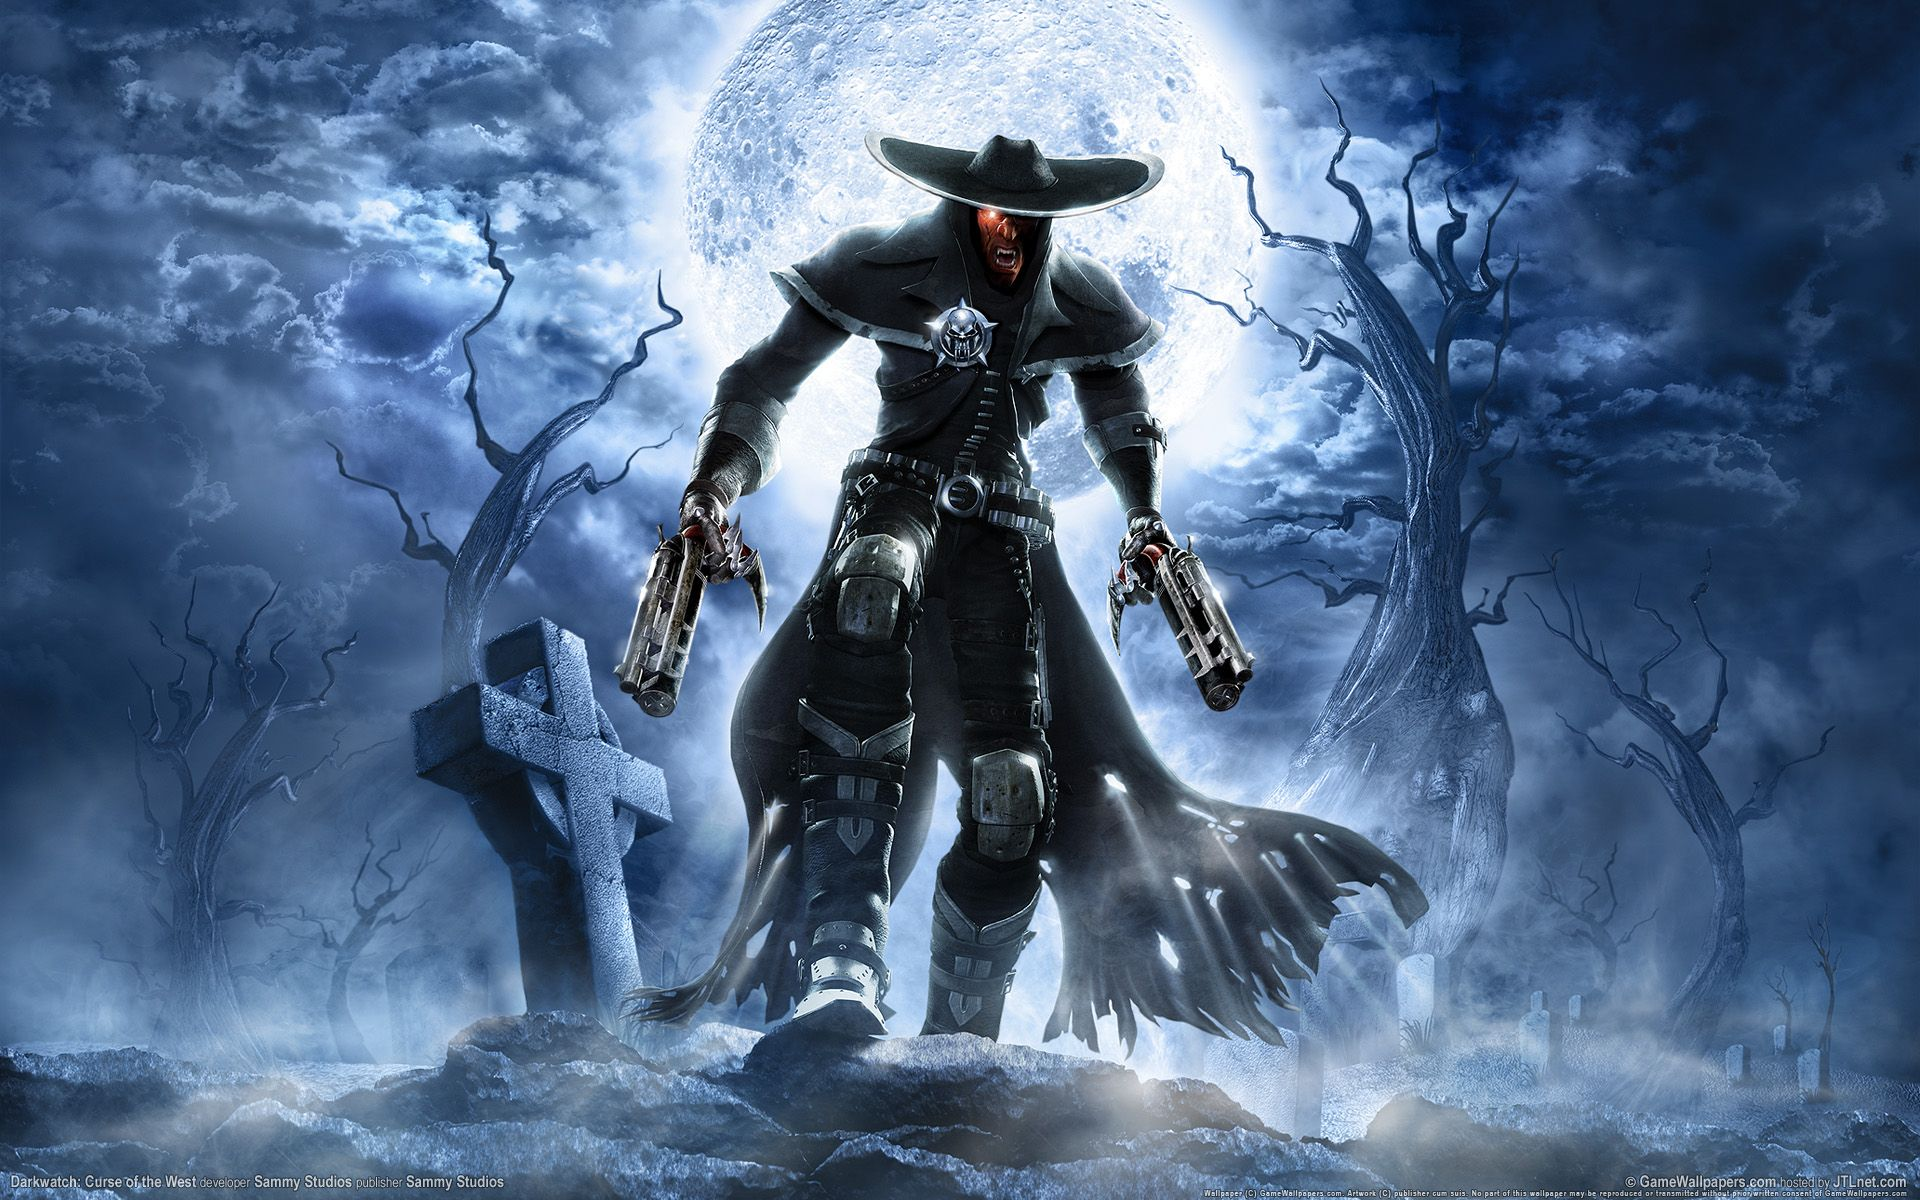 Dota2 wallpaper pc wallpapers gallery tactical gaming - Best Images About Games Wallpapers On Pinterest